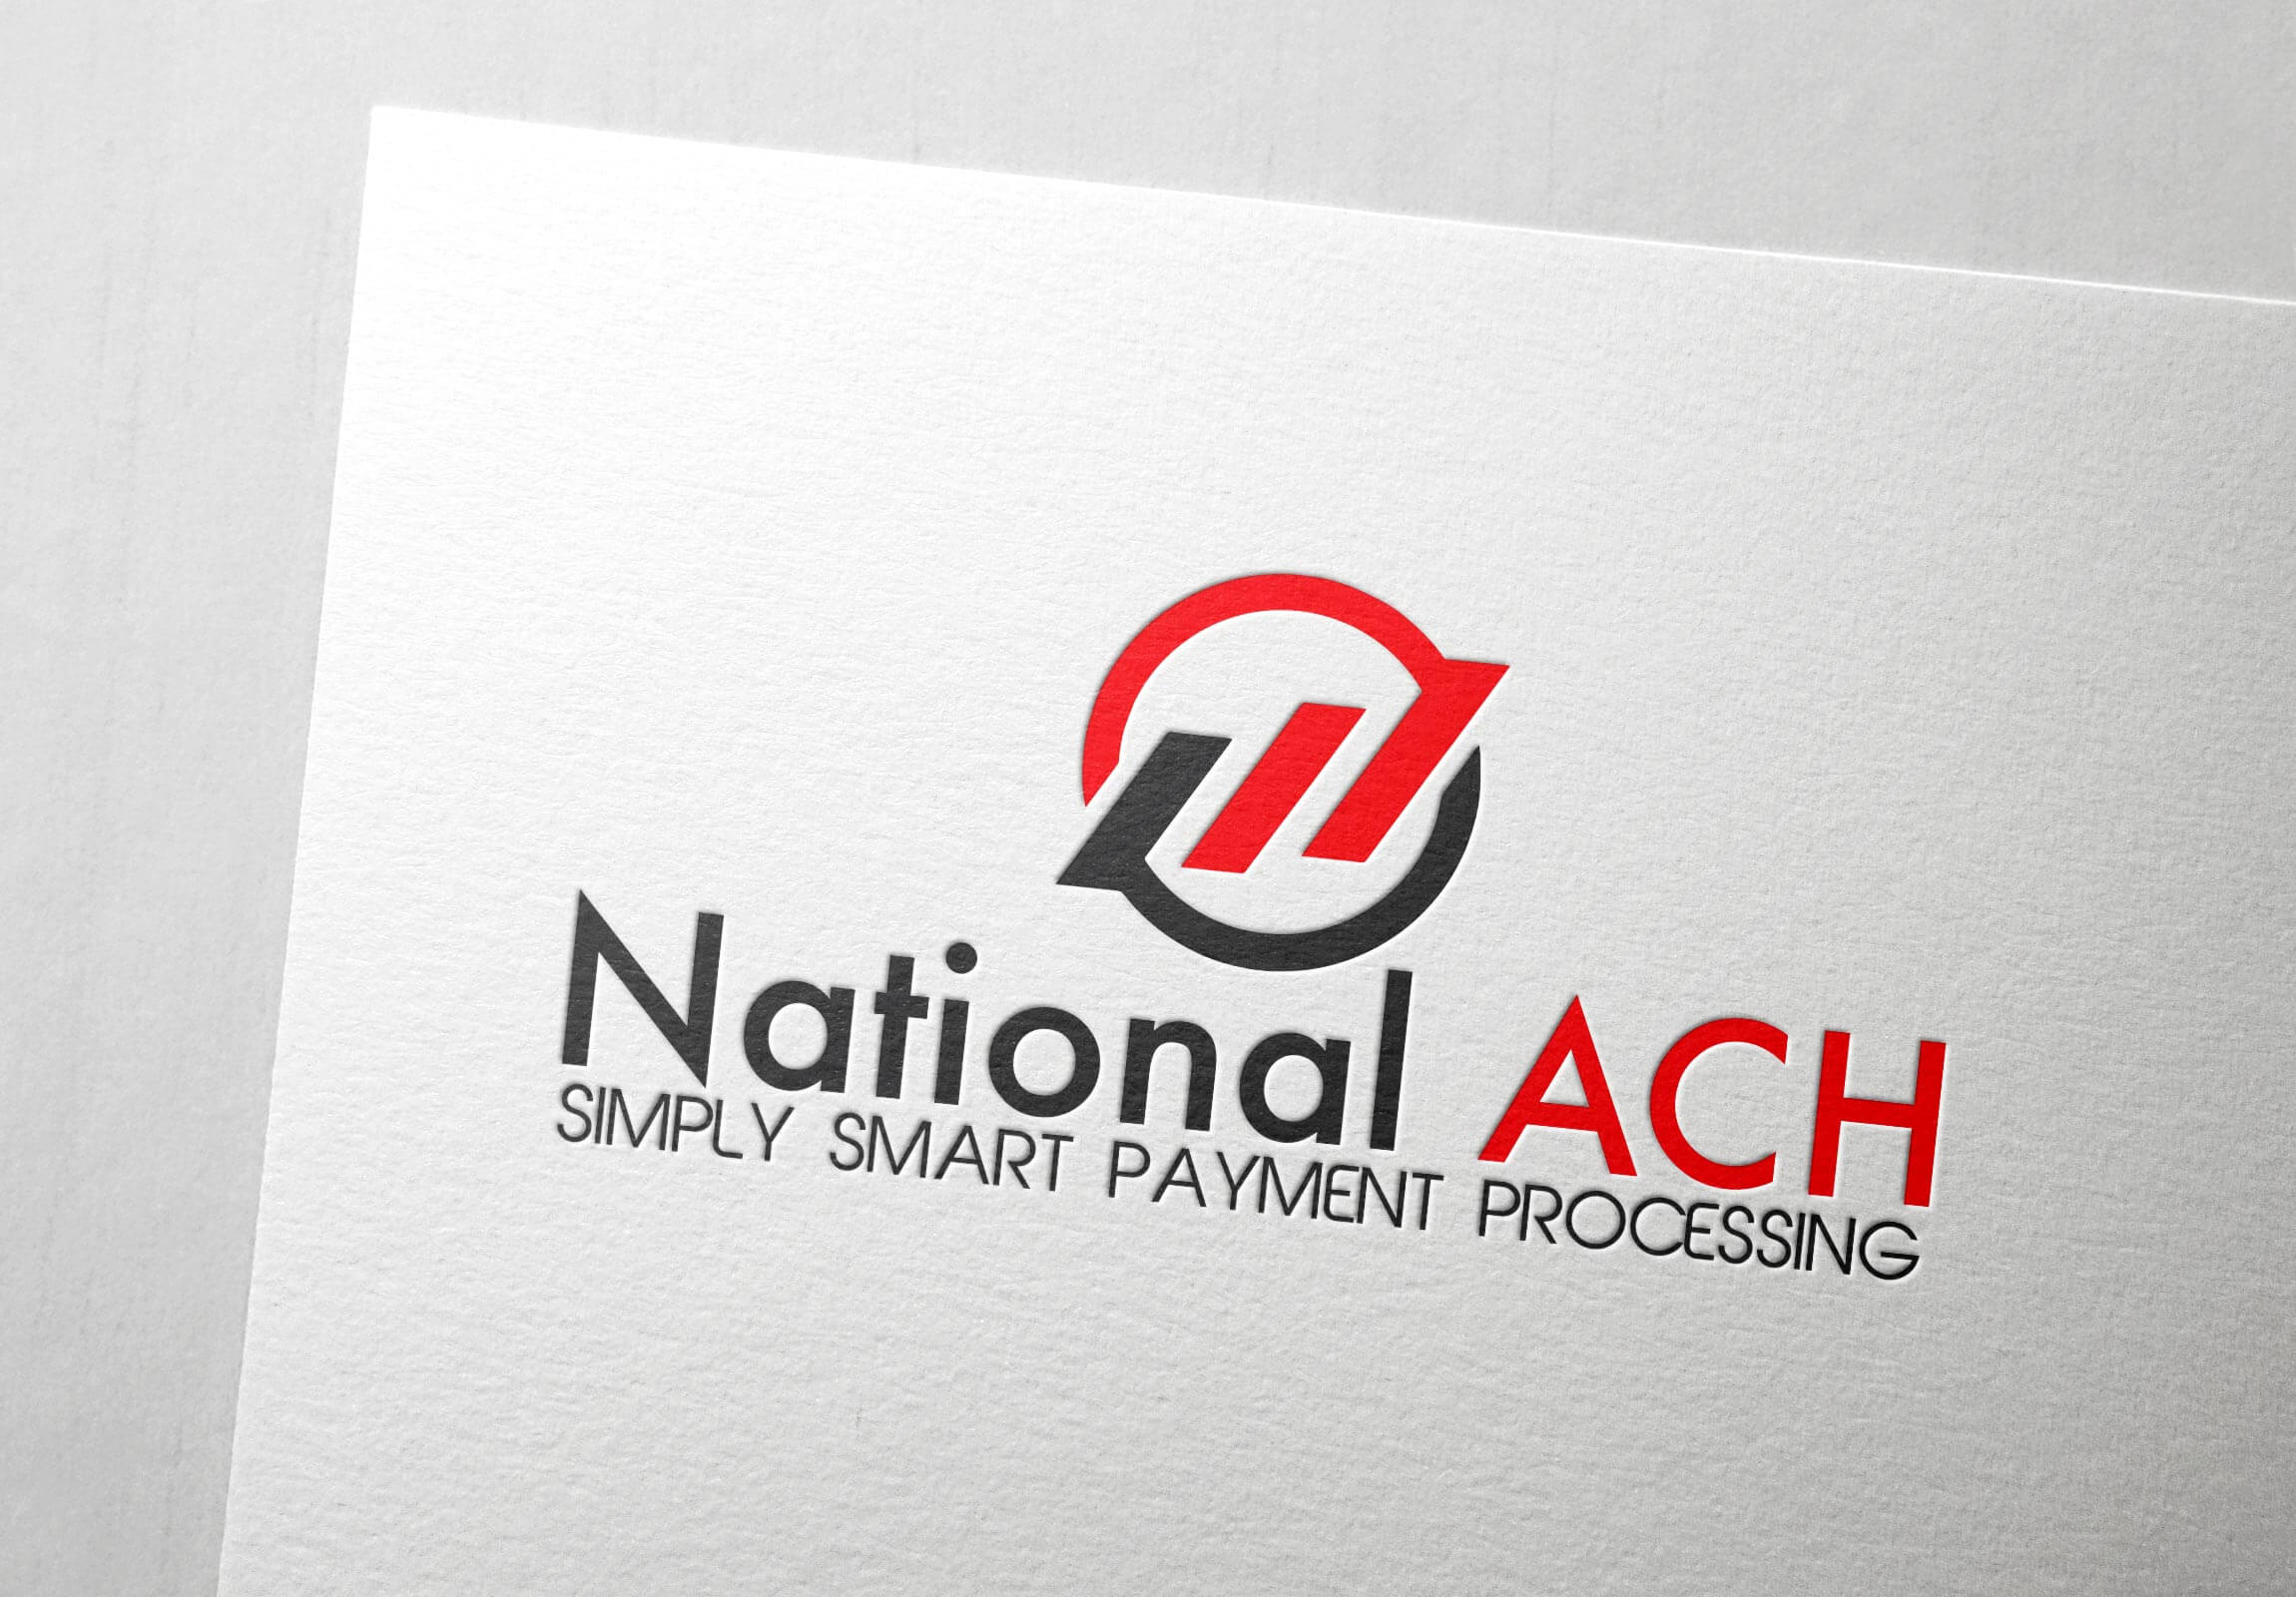 Payment Processing Company Logo Design